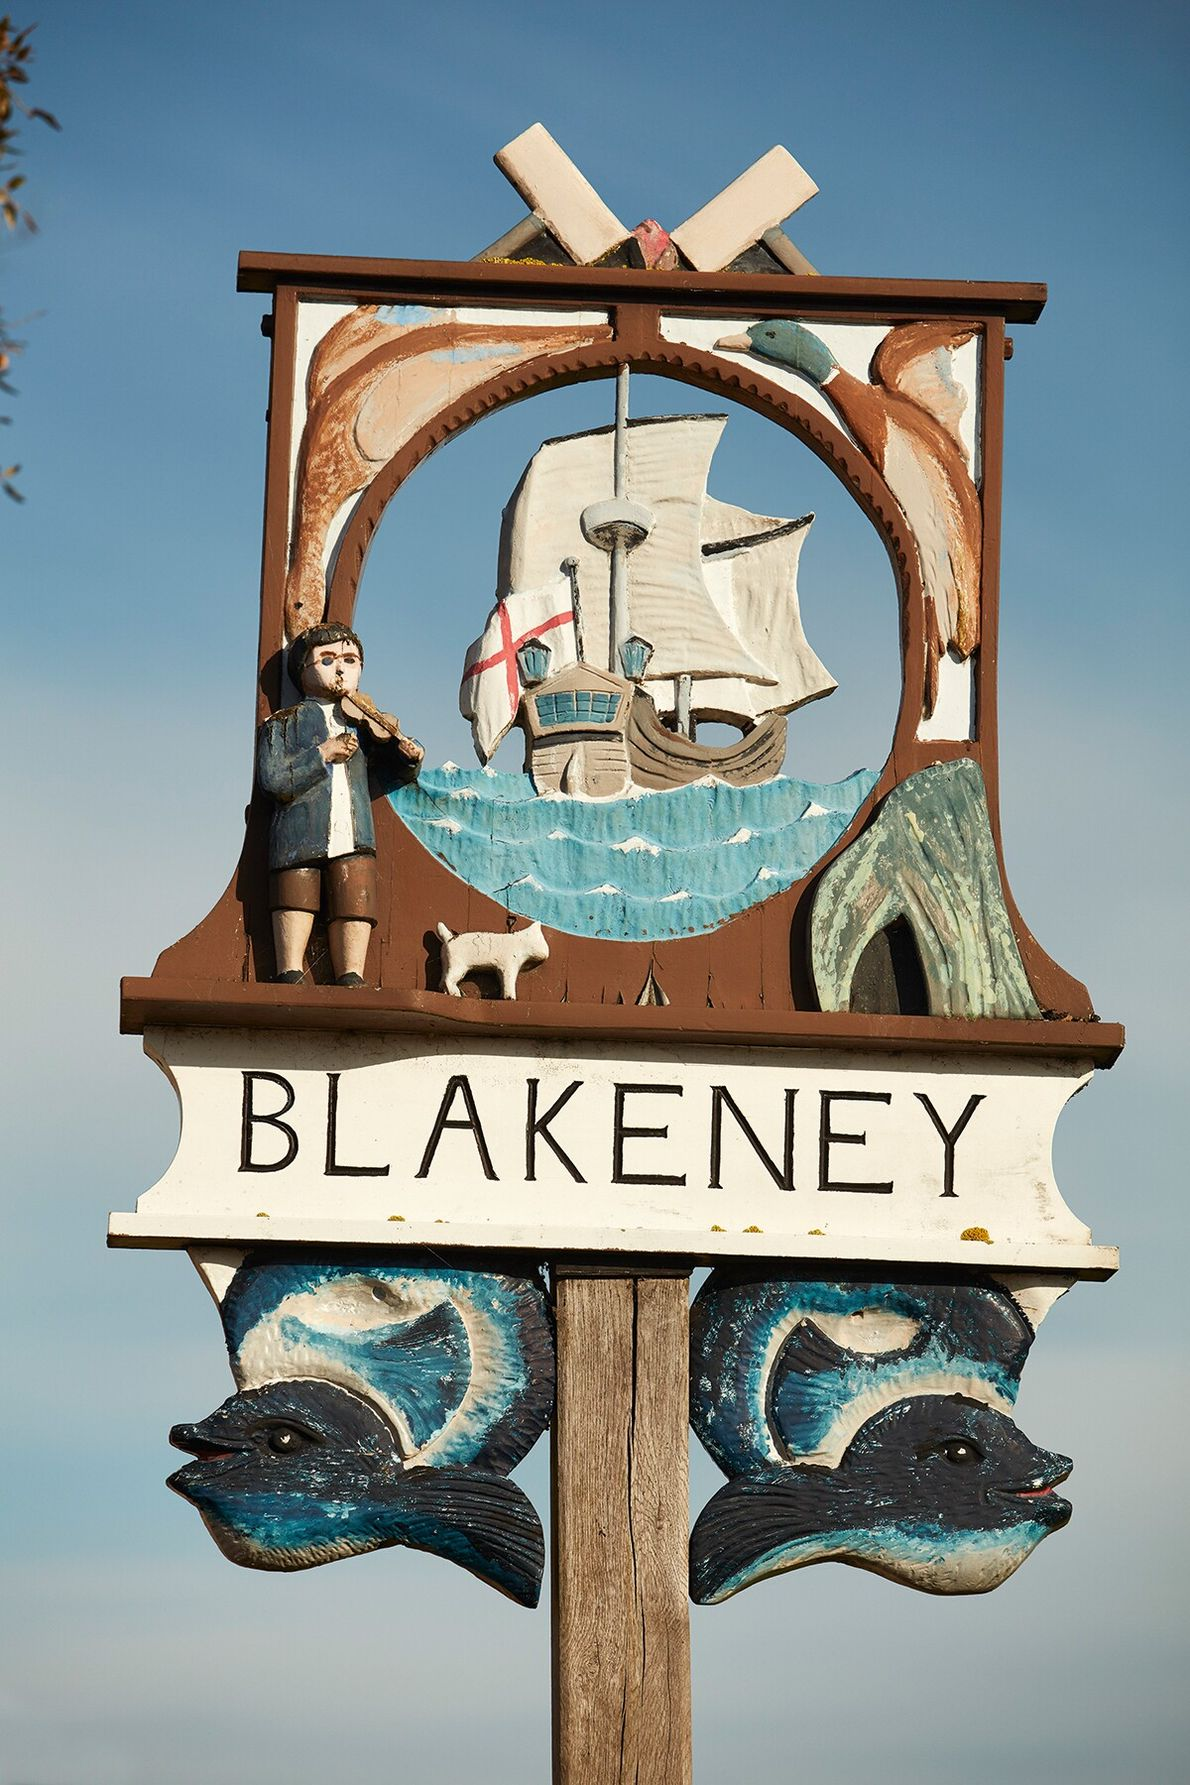 Referenced in the Domesday Book, the village of Blakeney emerged as a busy shipping port in ...